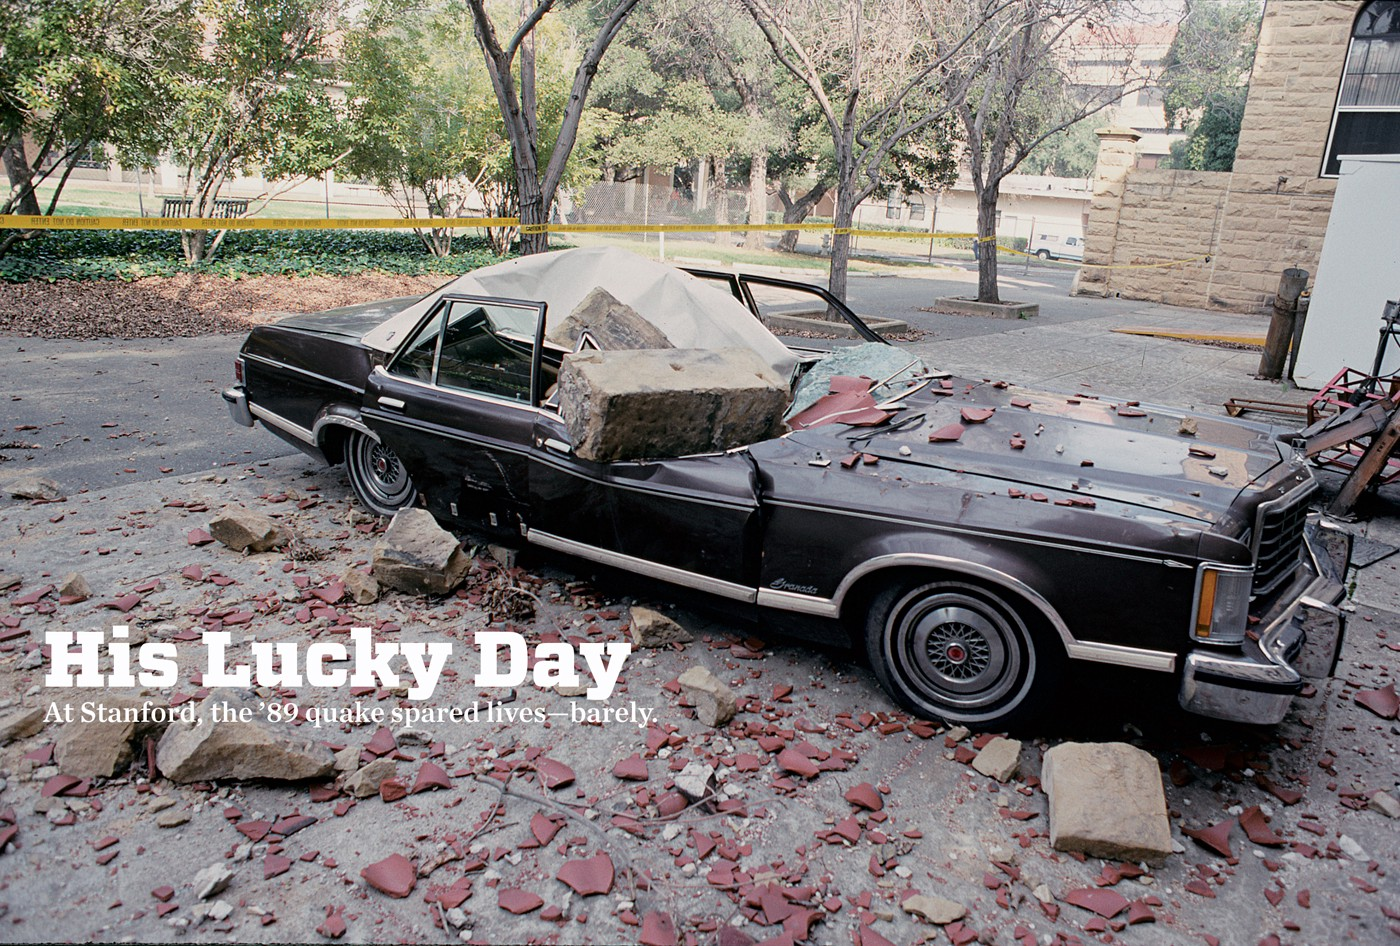 His lucky day